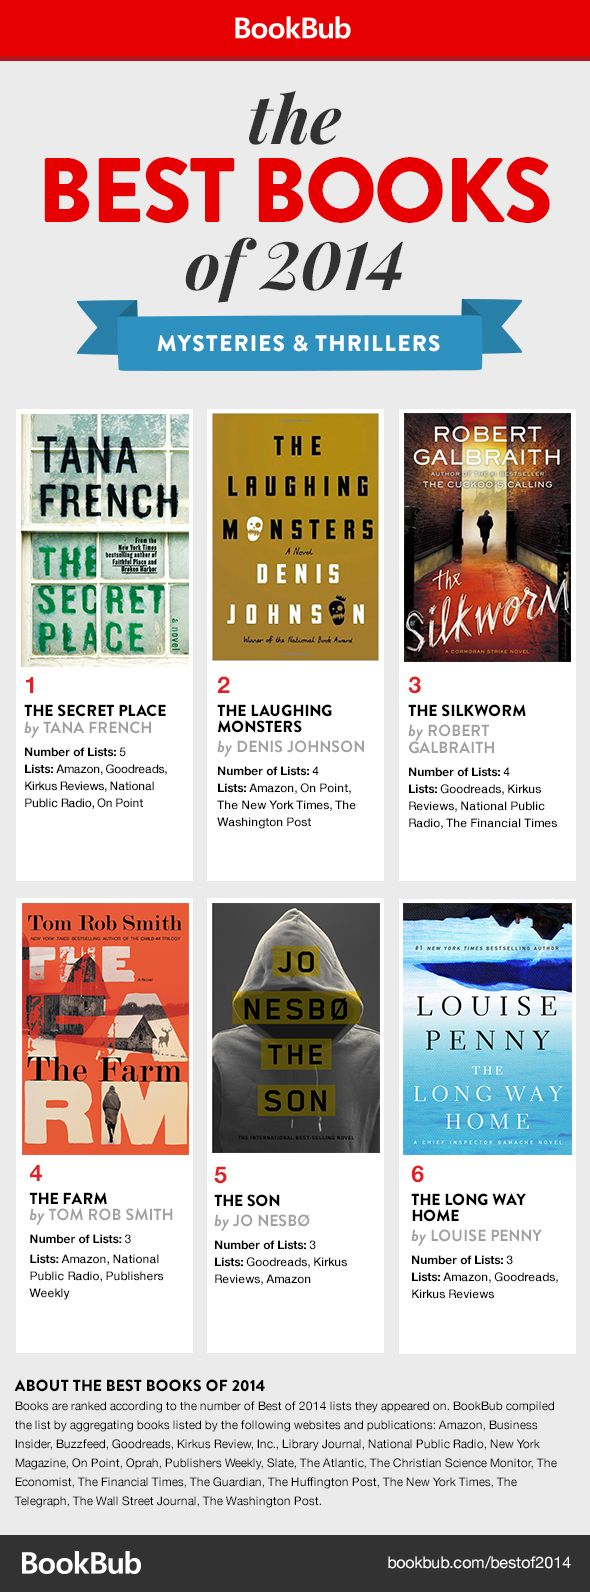 The best mysteries & thrillers of the year - how many have you read?